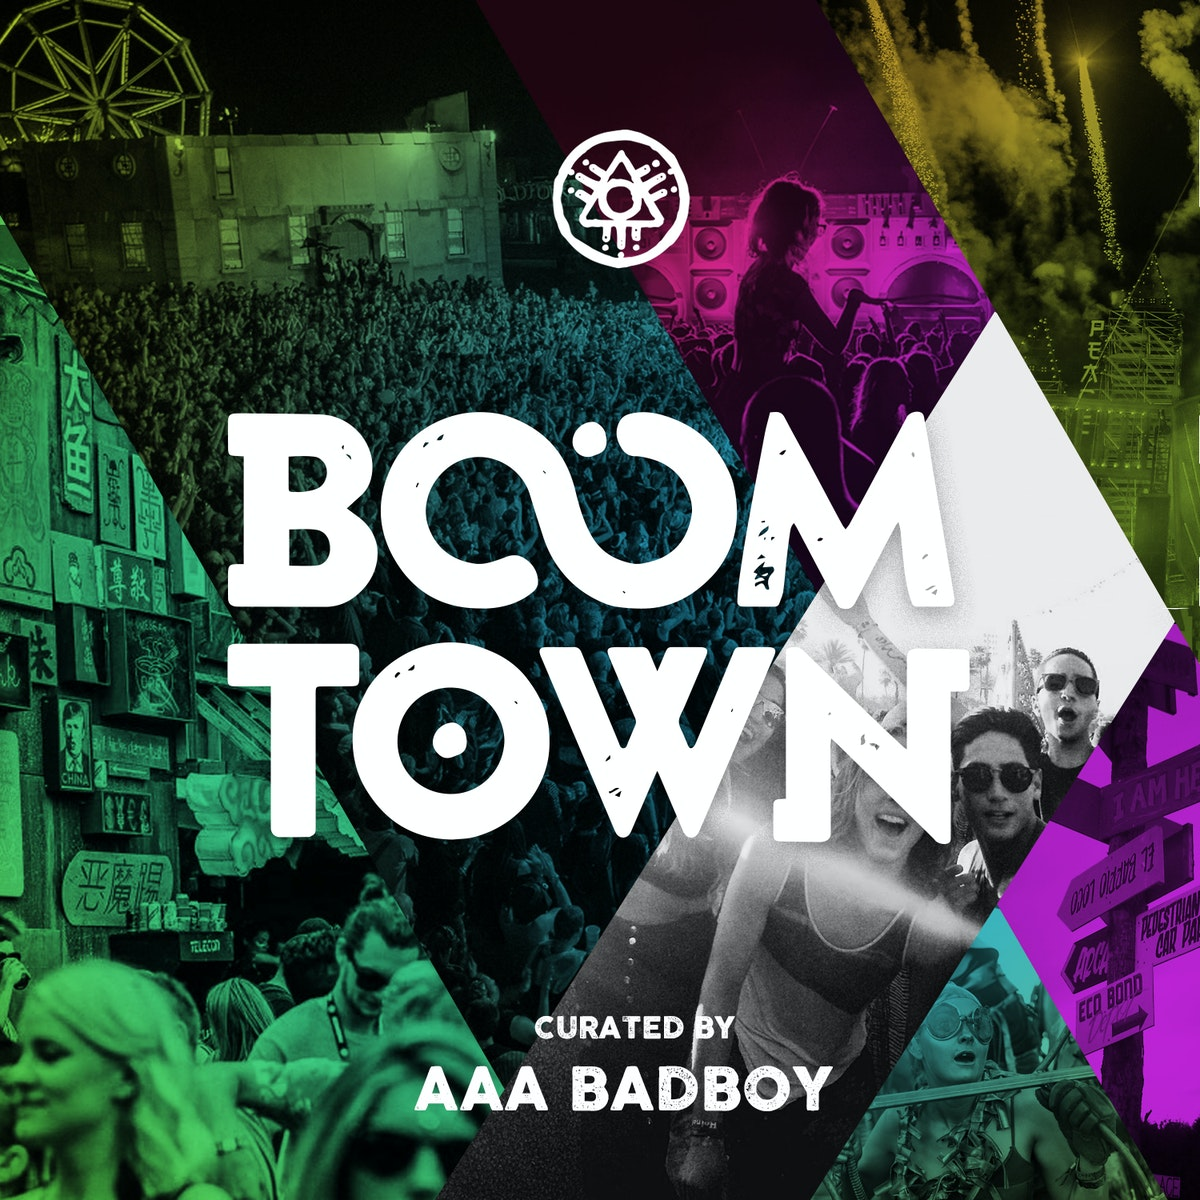 Boomtown Chapter 10 Playlist on Apple Music!